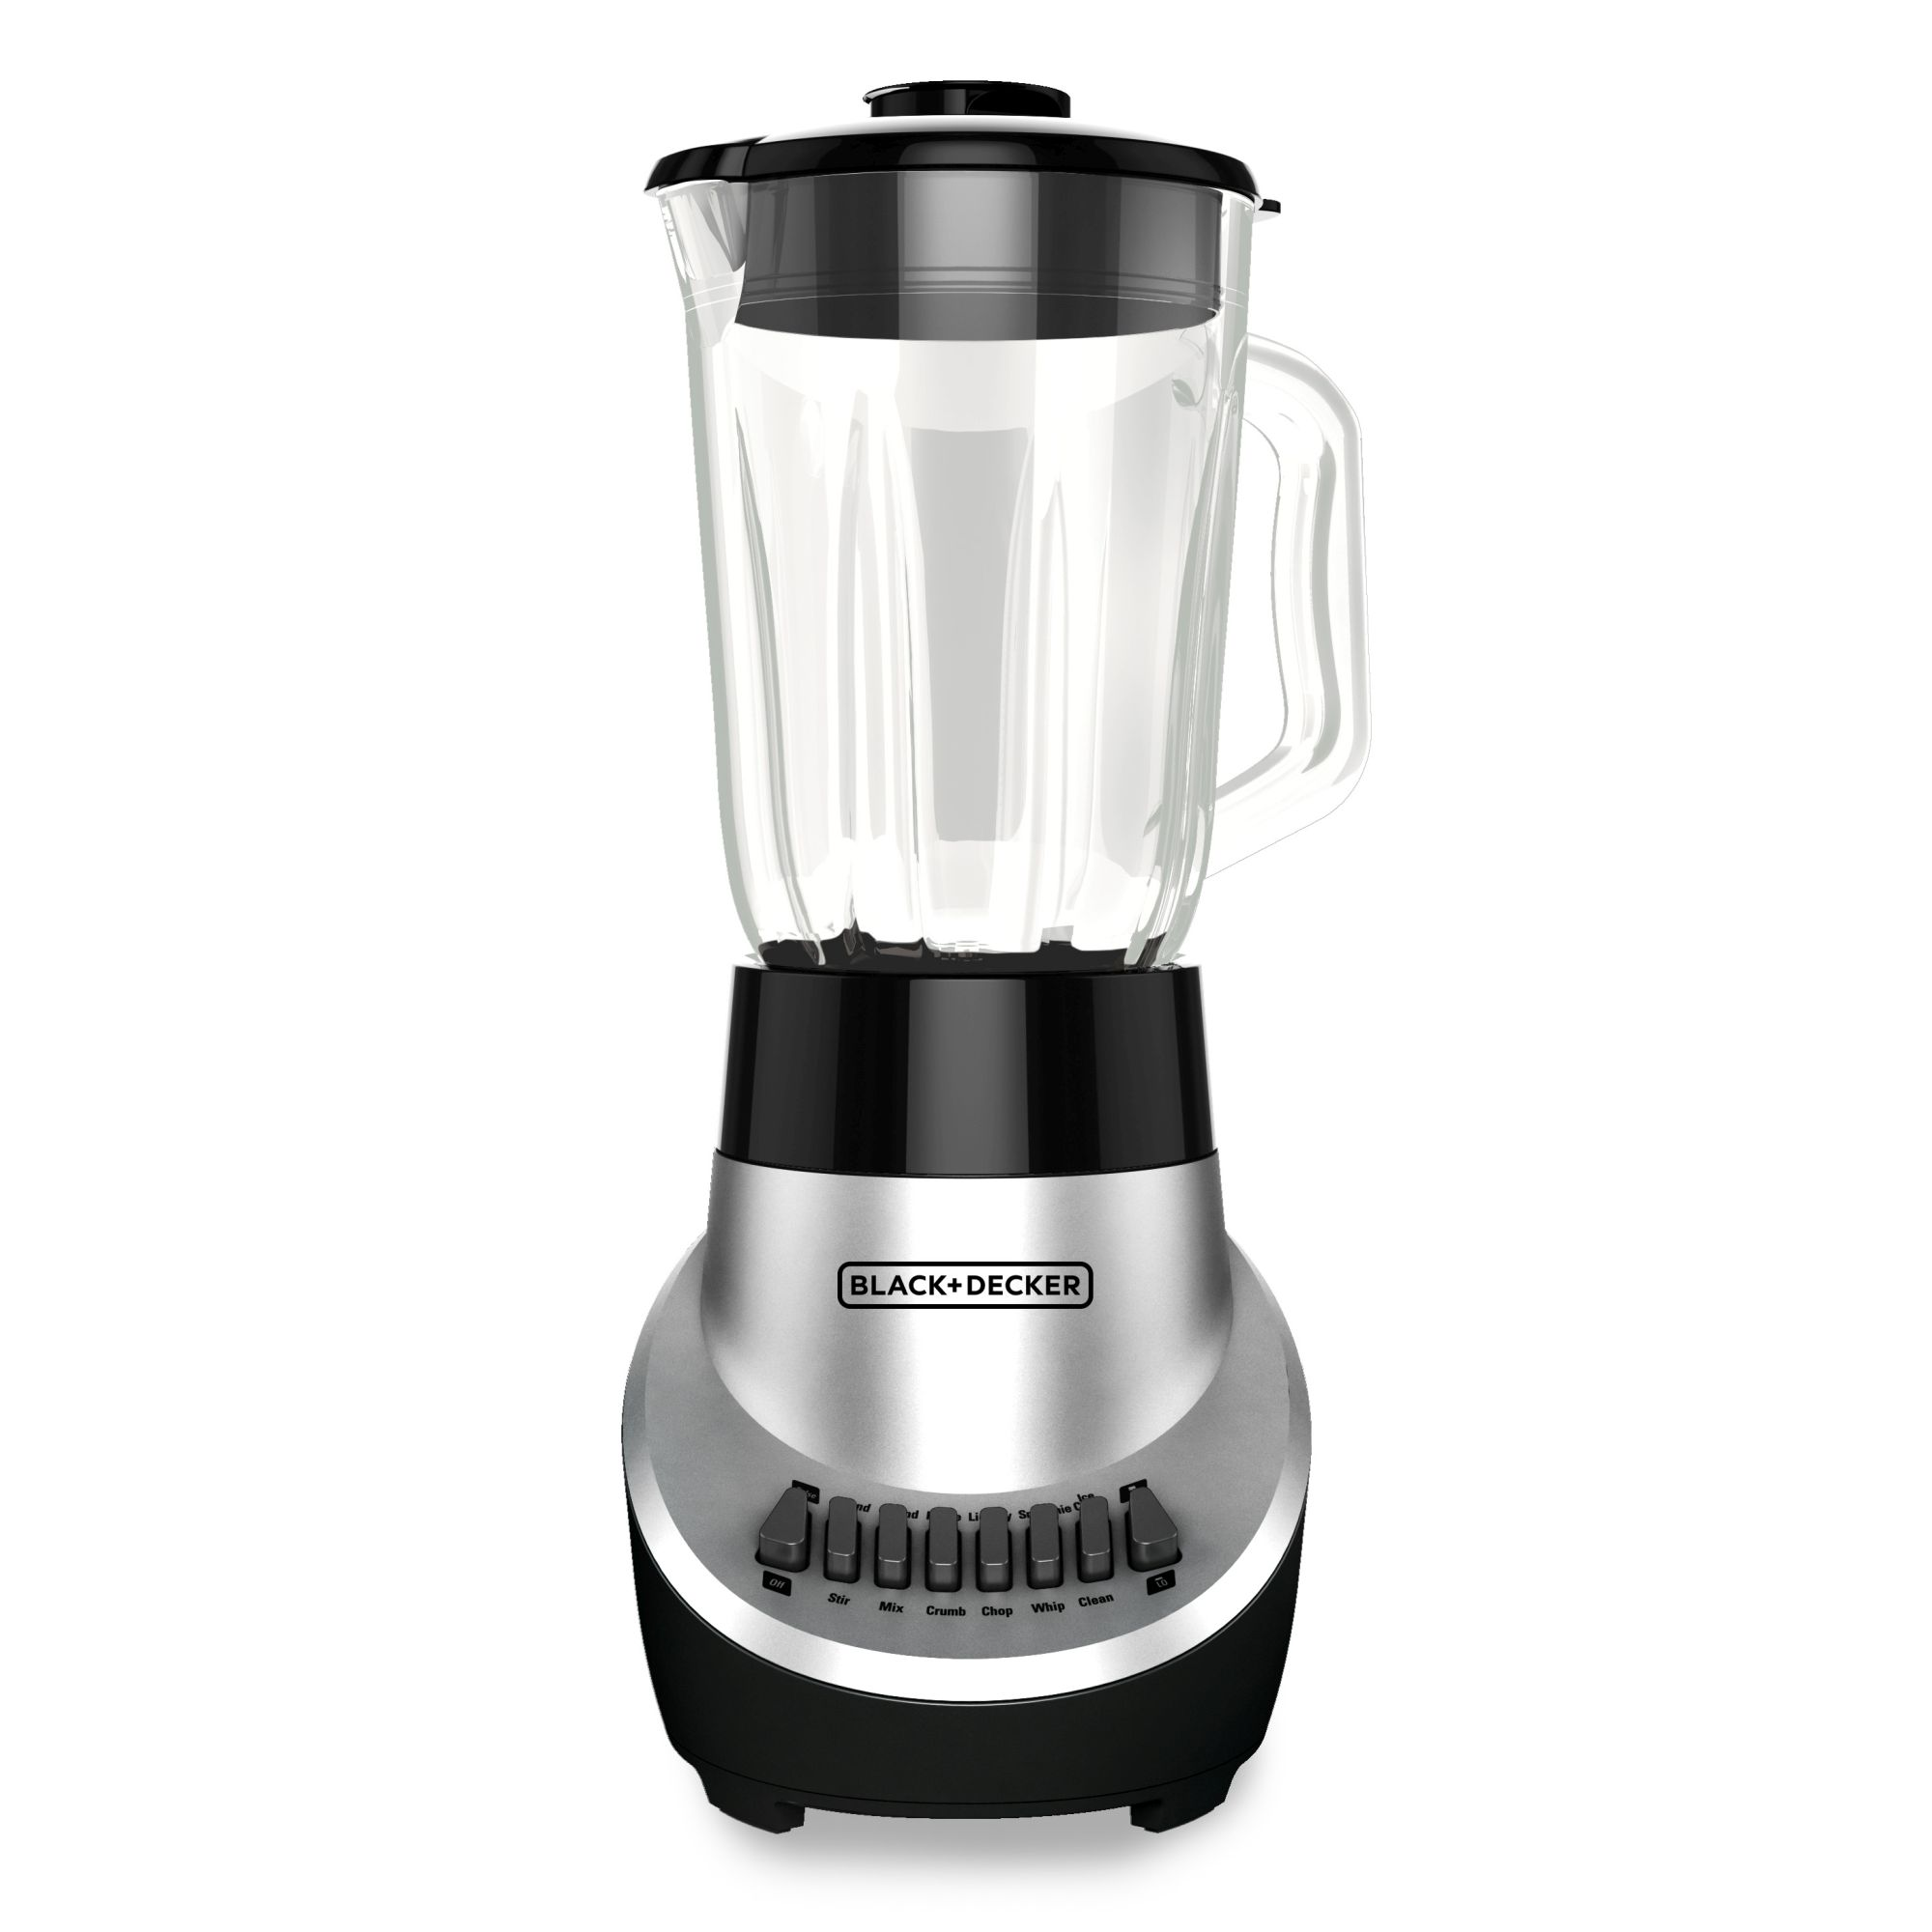 BD 12 Speed Blender Stainless Steel Black